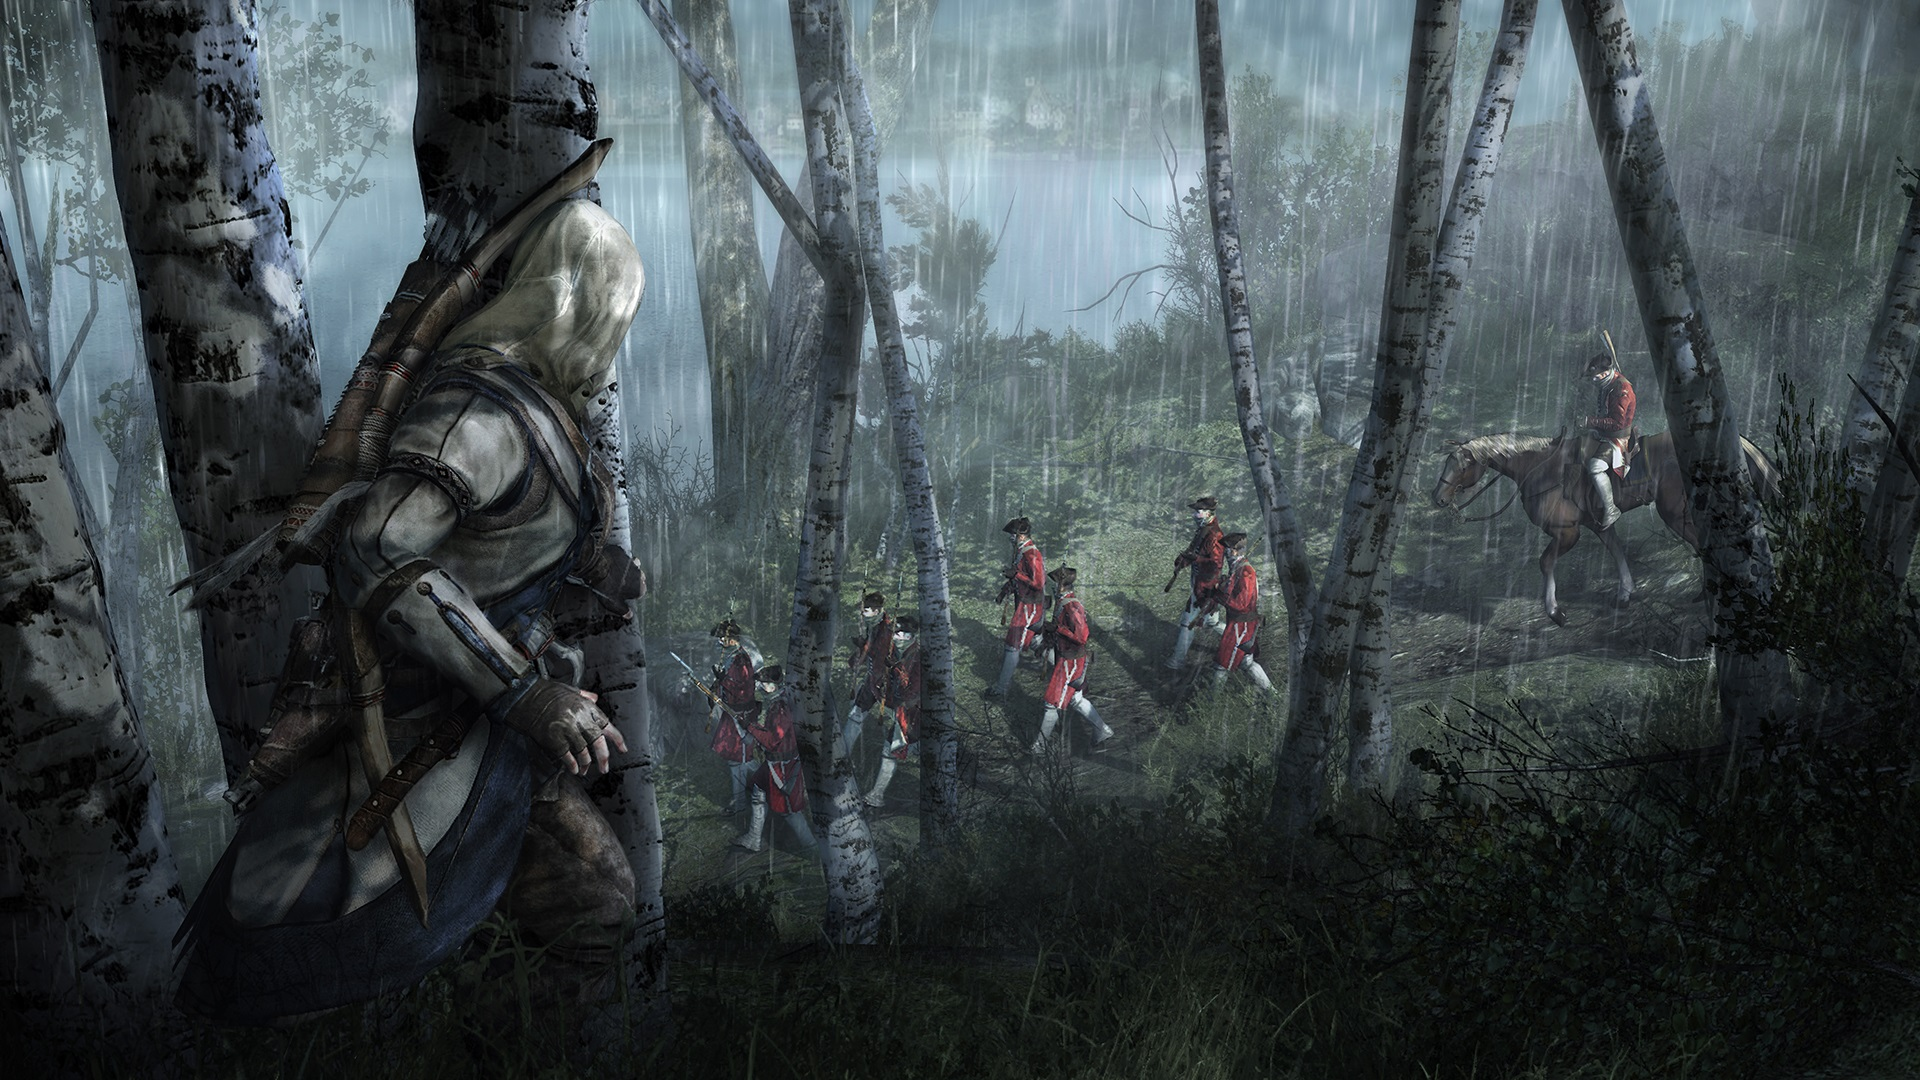 Ubisoft - Assassin's Creed III